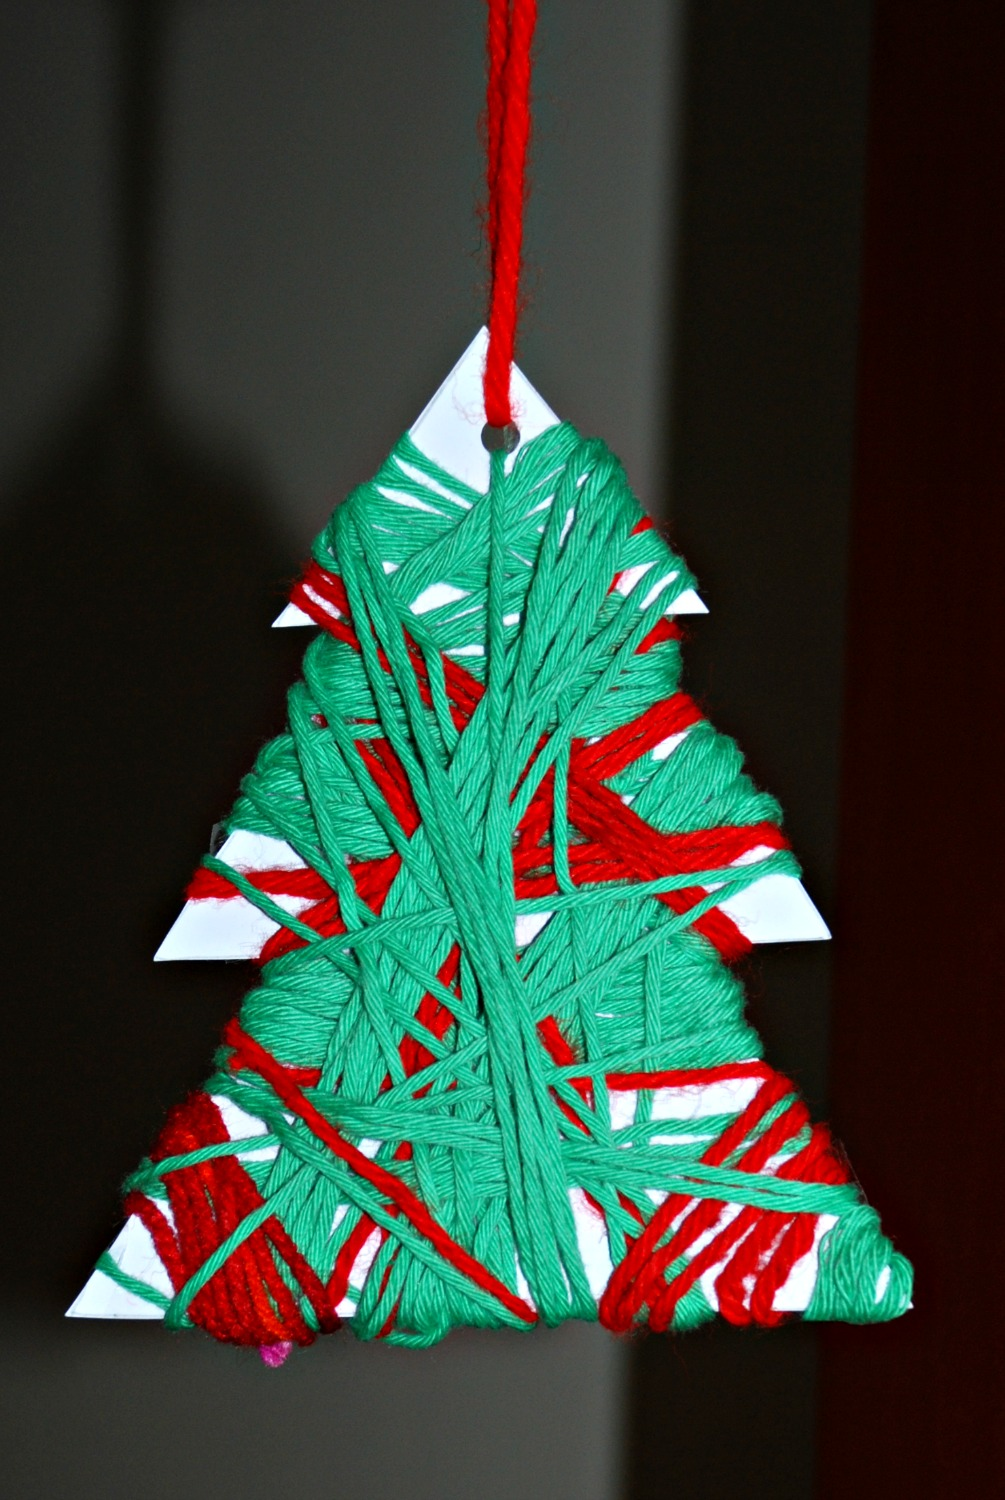 Home made Christmas tree decorations for the kids